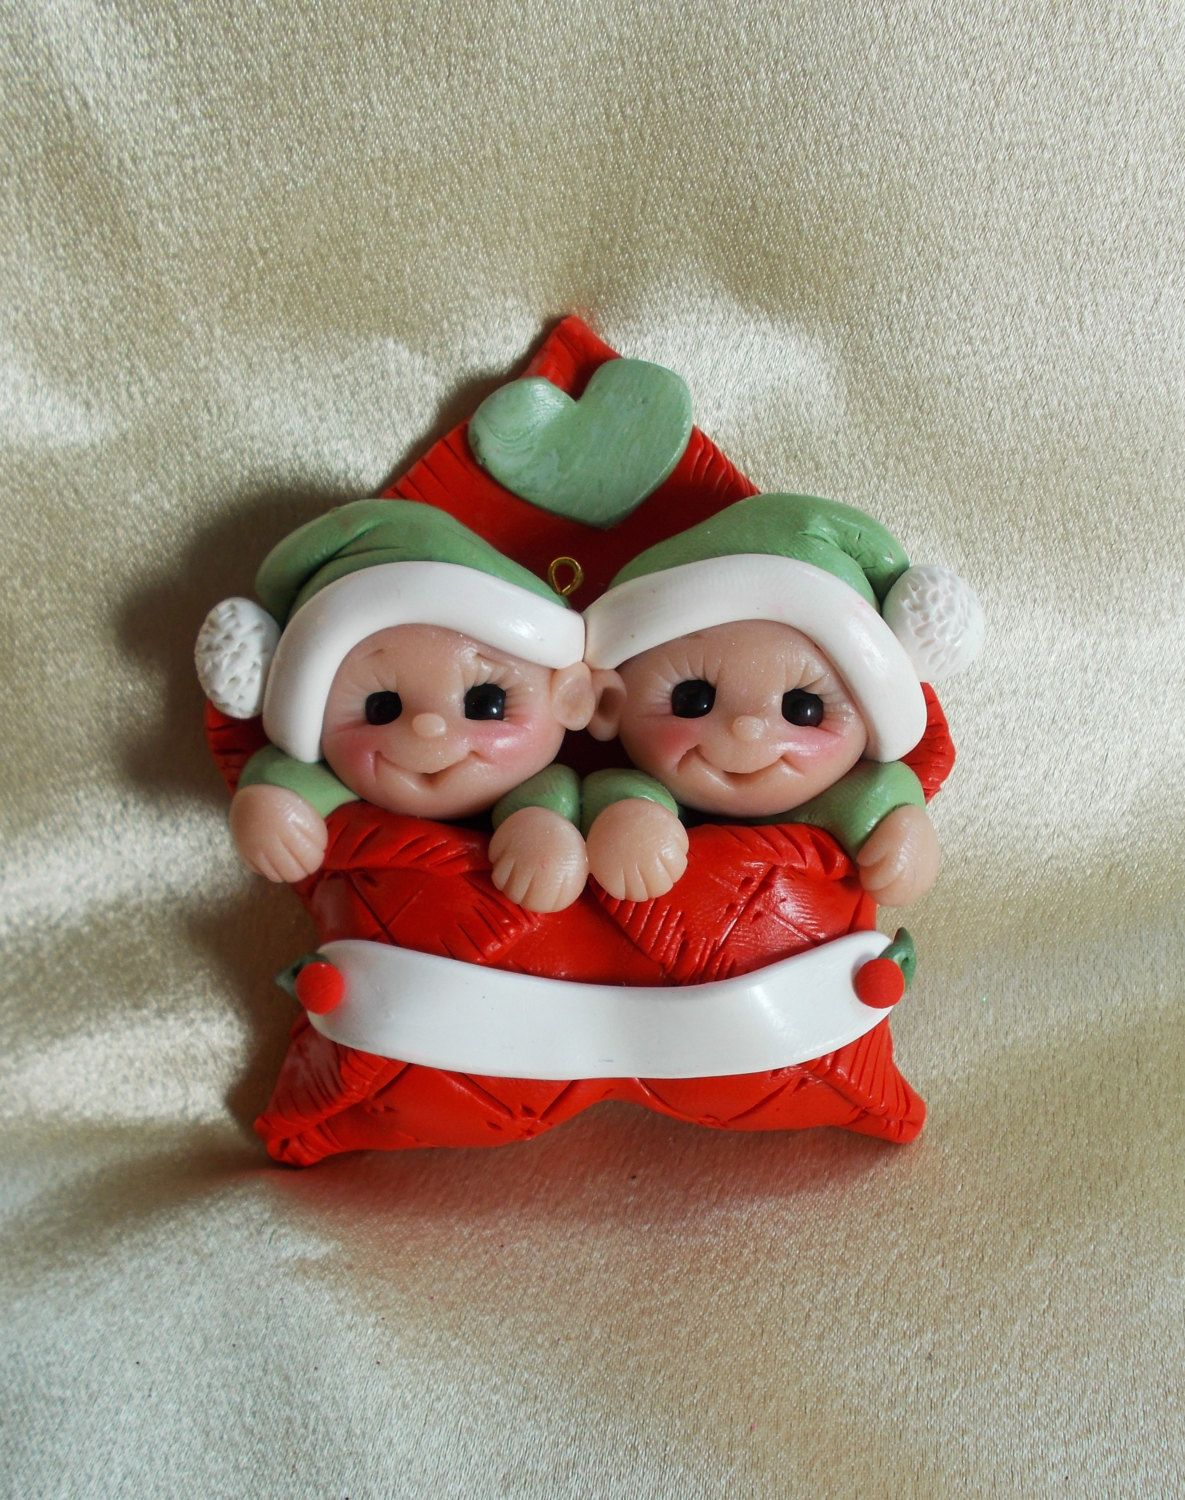 Personalized baby christmas ornaments - Twin Baby Ornament Twin Ornament Baby S First Christmas Twins Polymer Clay Sculpture Baby Gift Twin Personalized Baby Gift Children